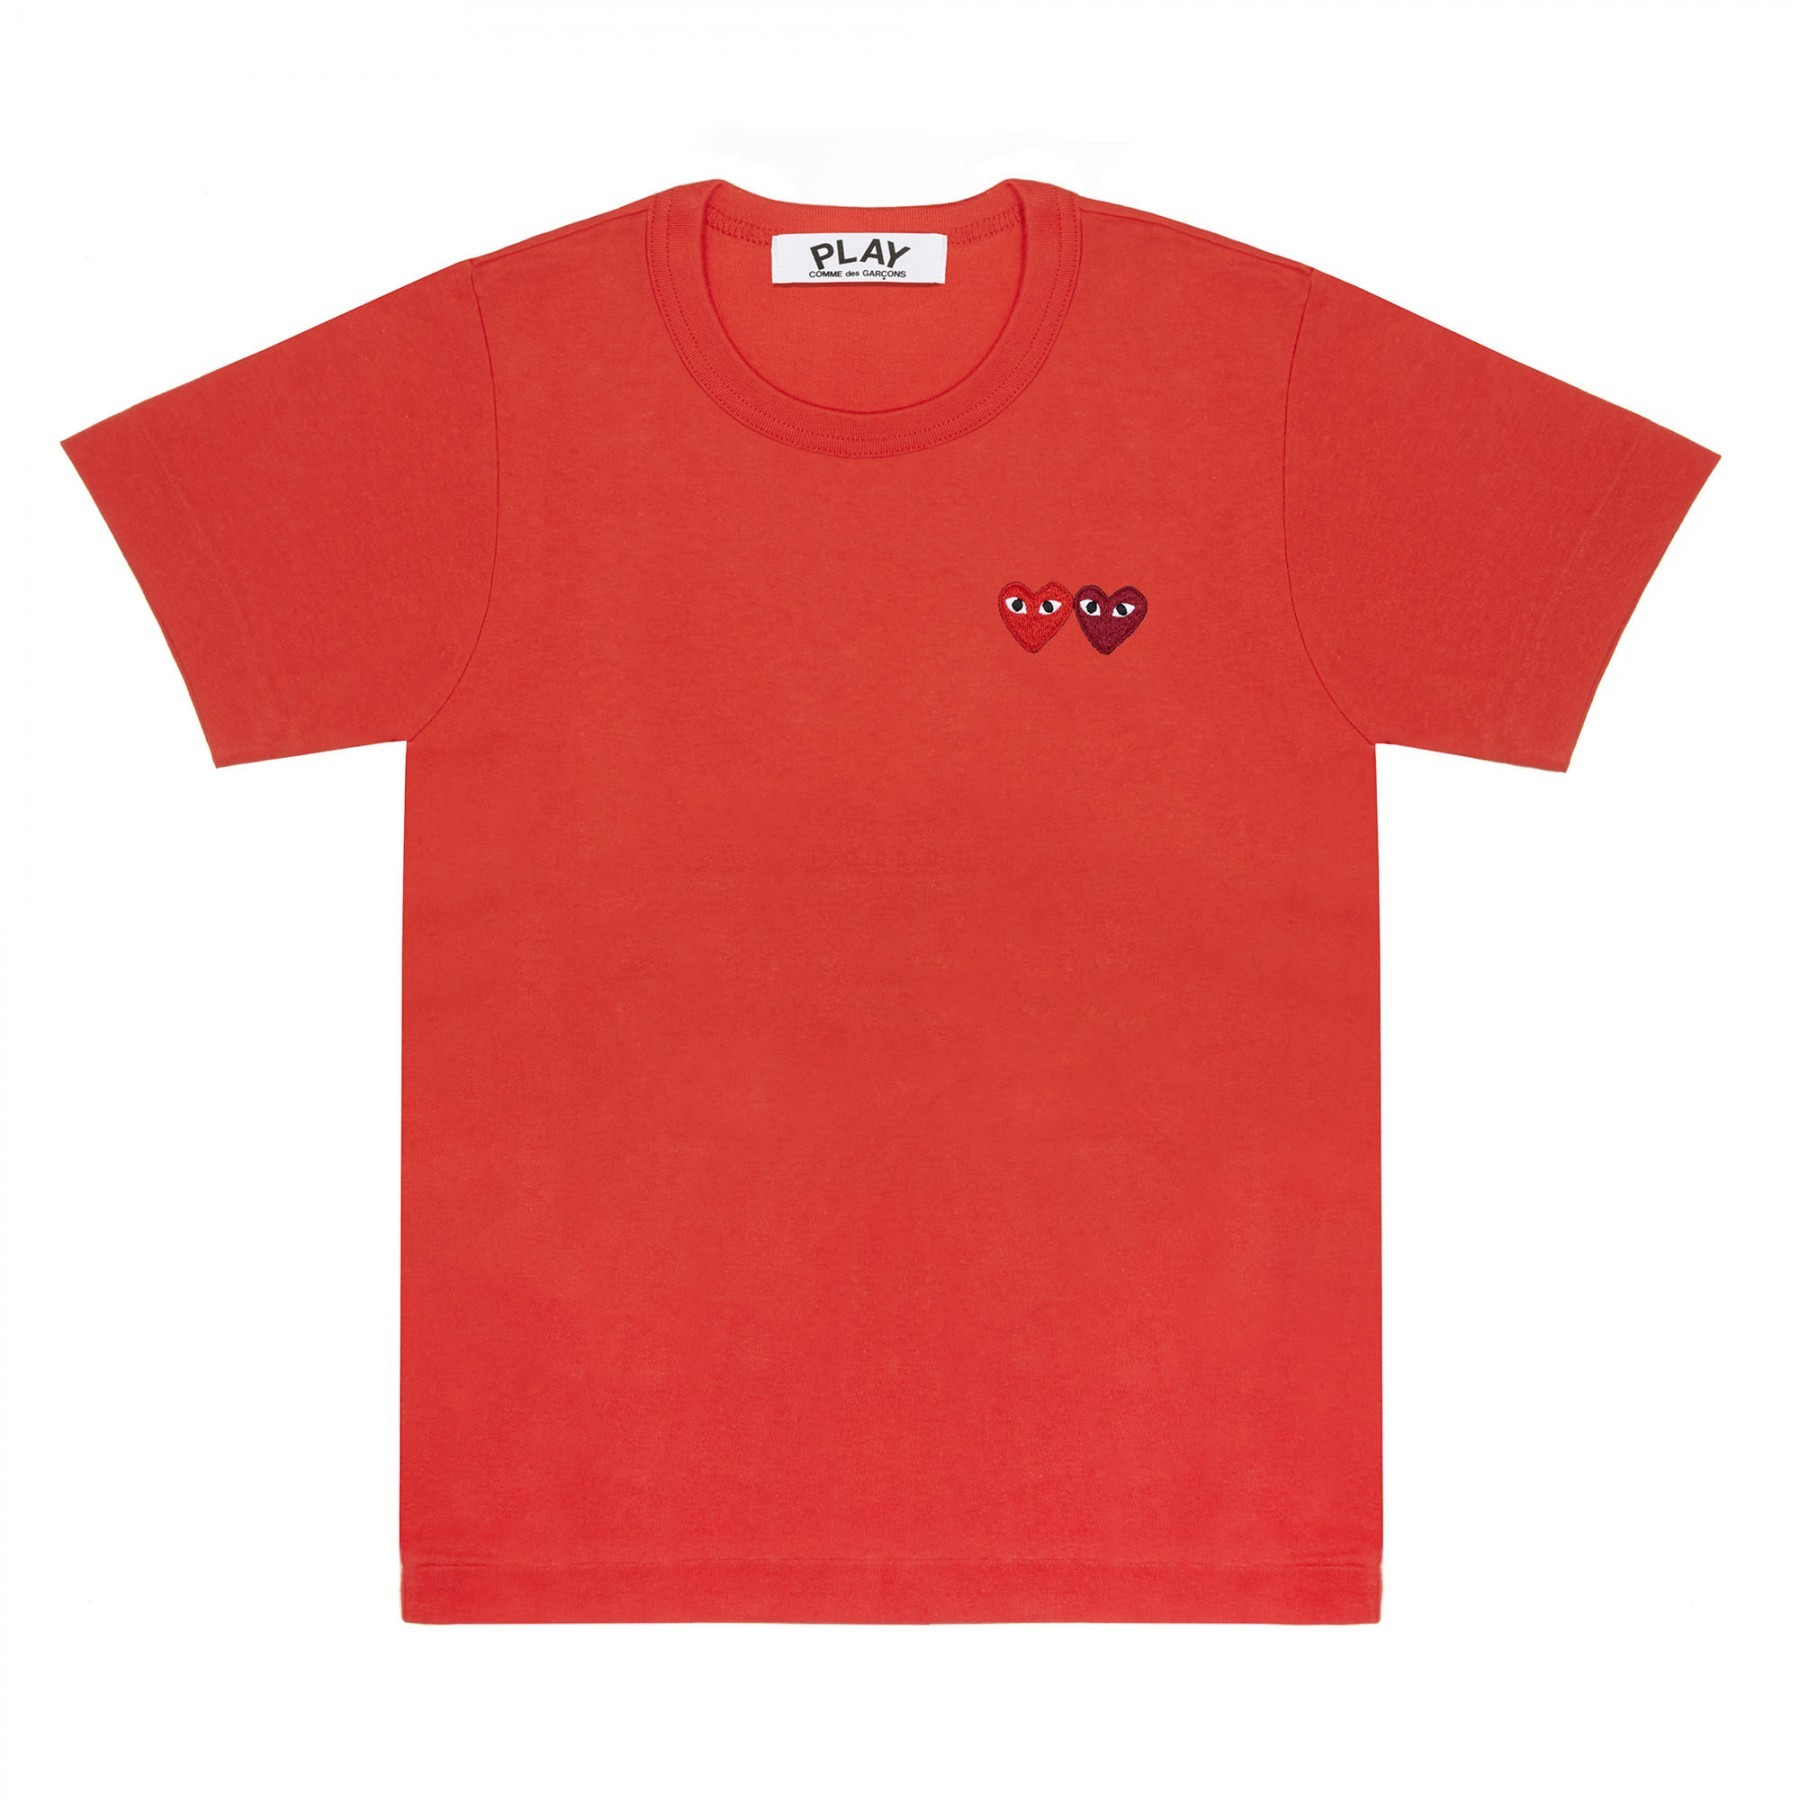 COMME DES GARÇONS PLAY - COMME DES GARÇONS PLAY T-SHIRT RED/TWO HEARTS